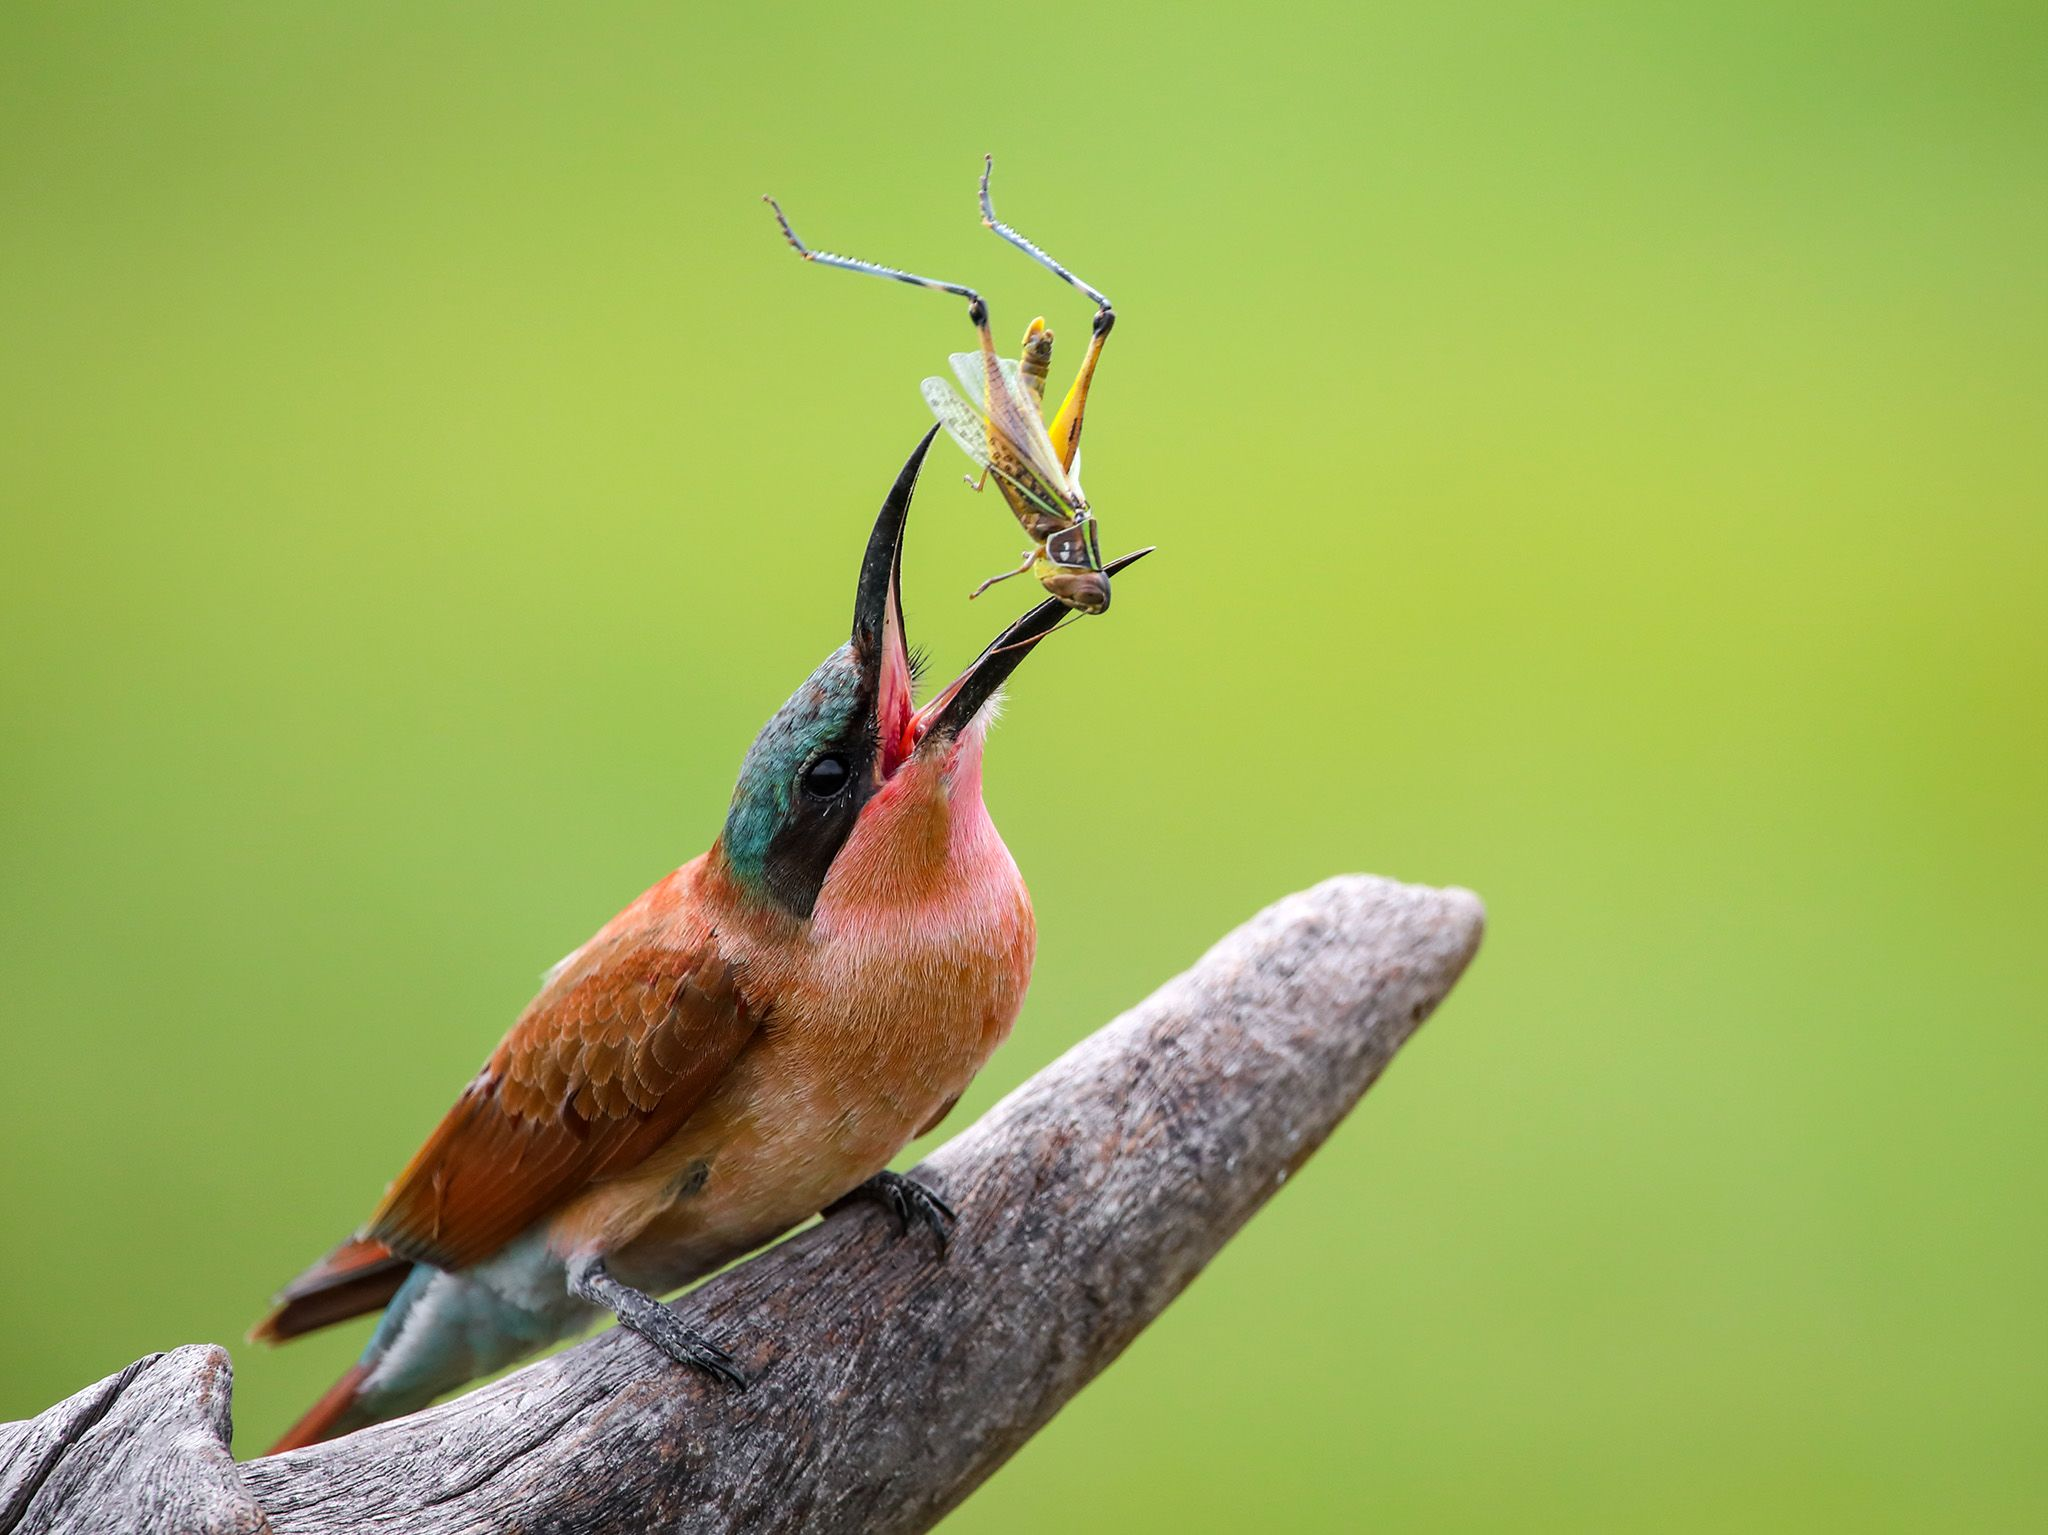 Botswana:  A Carmine Bee-eater tosses a grasshopper into the air, rearranging it to knock off... [Photo of the day - November 2018]